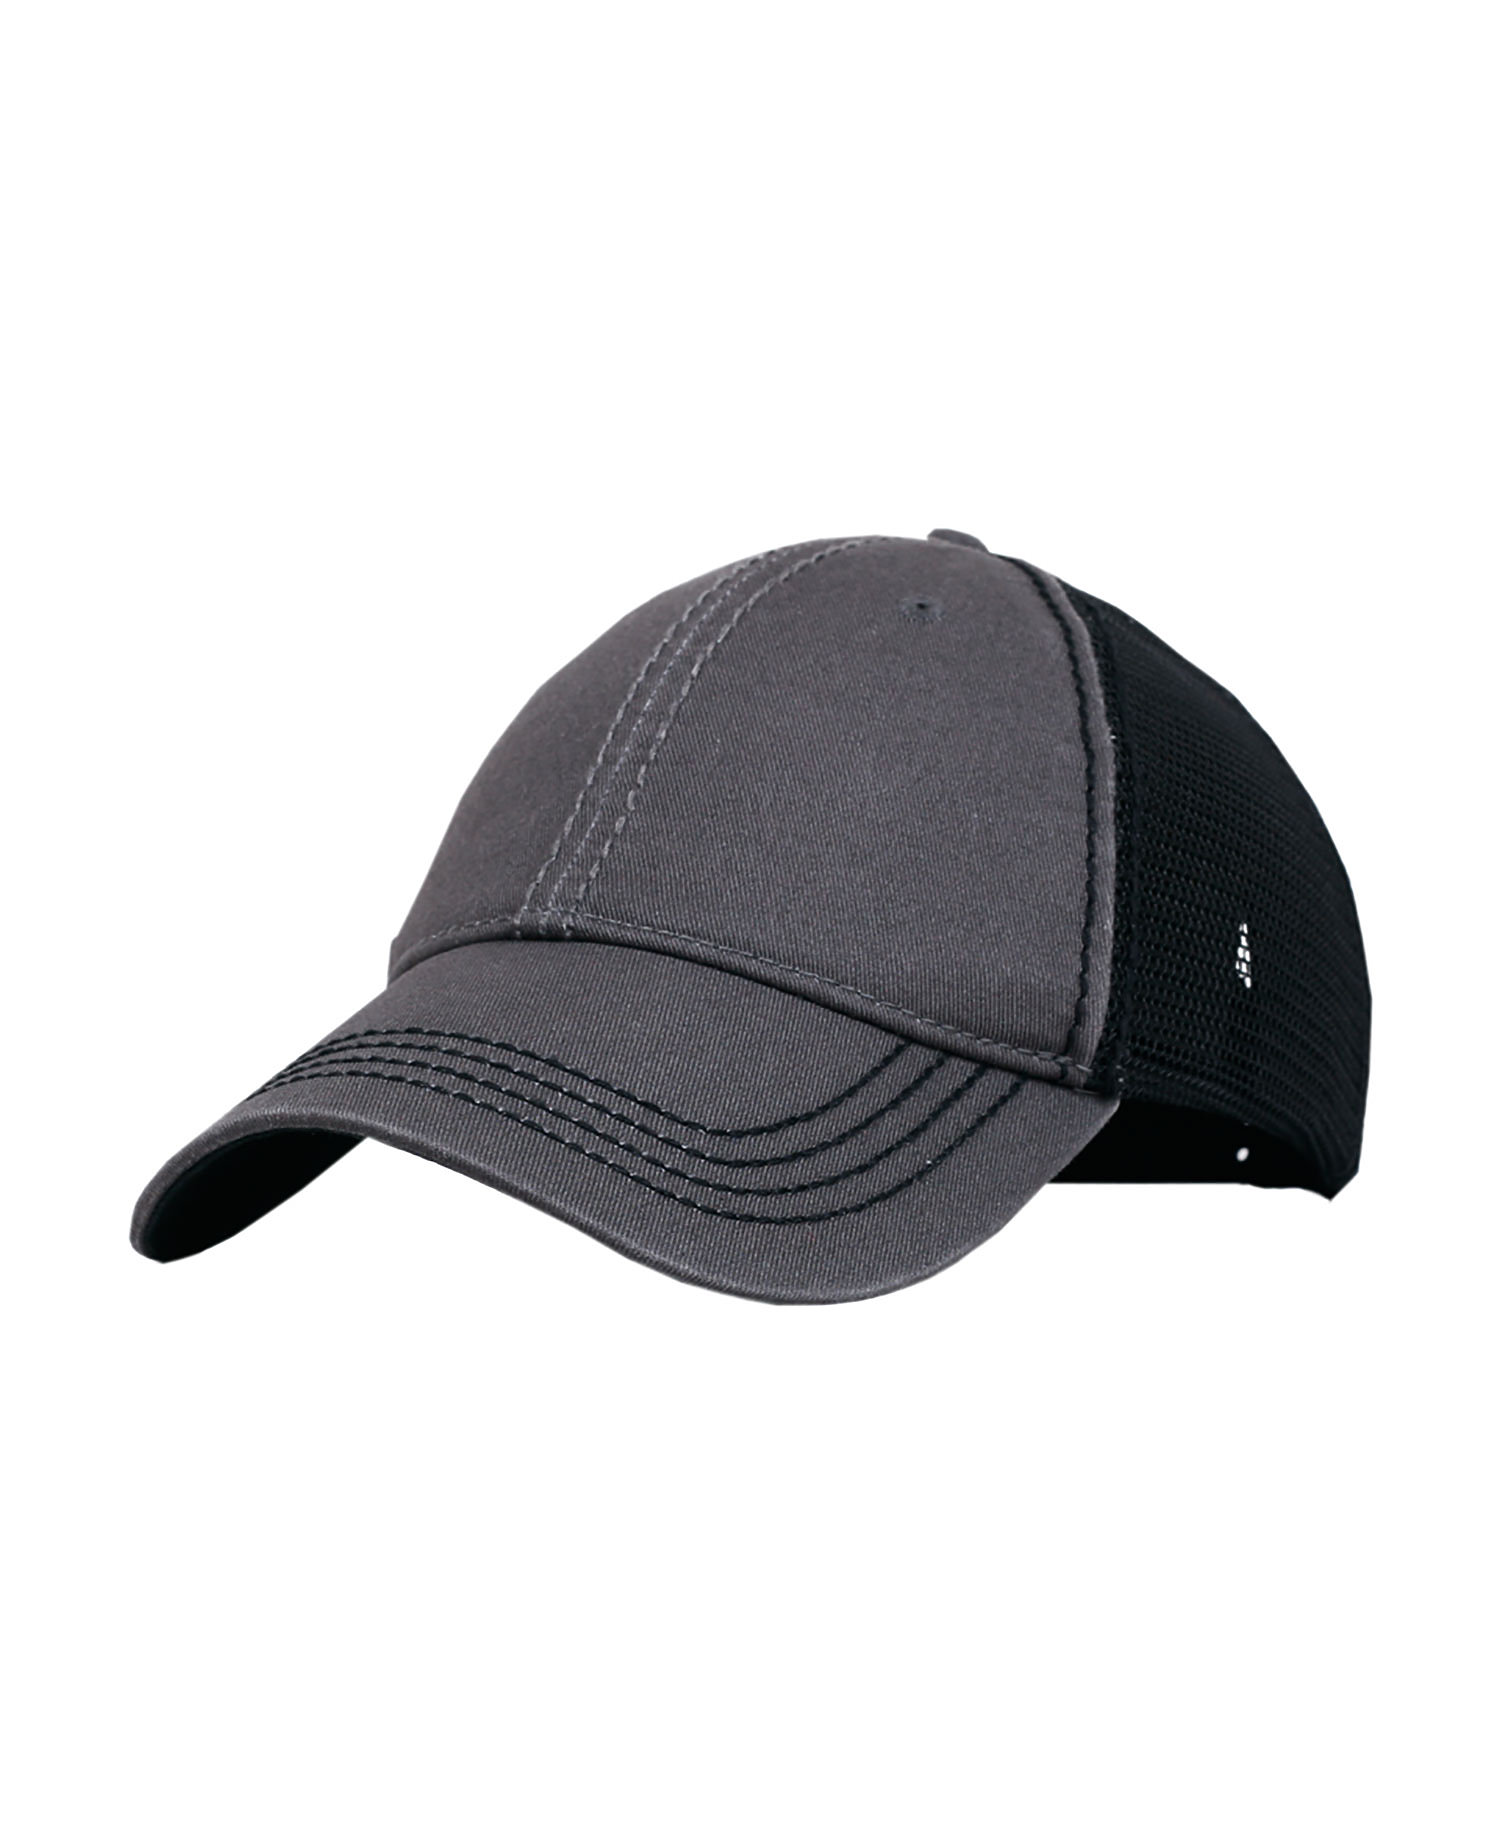 Fahrenheit F0787 - Garment Washed Cotton Mesh Back Trucker ...